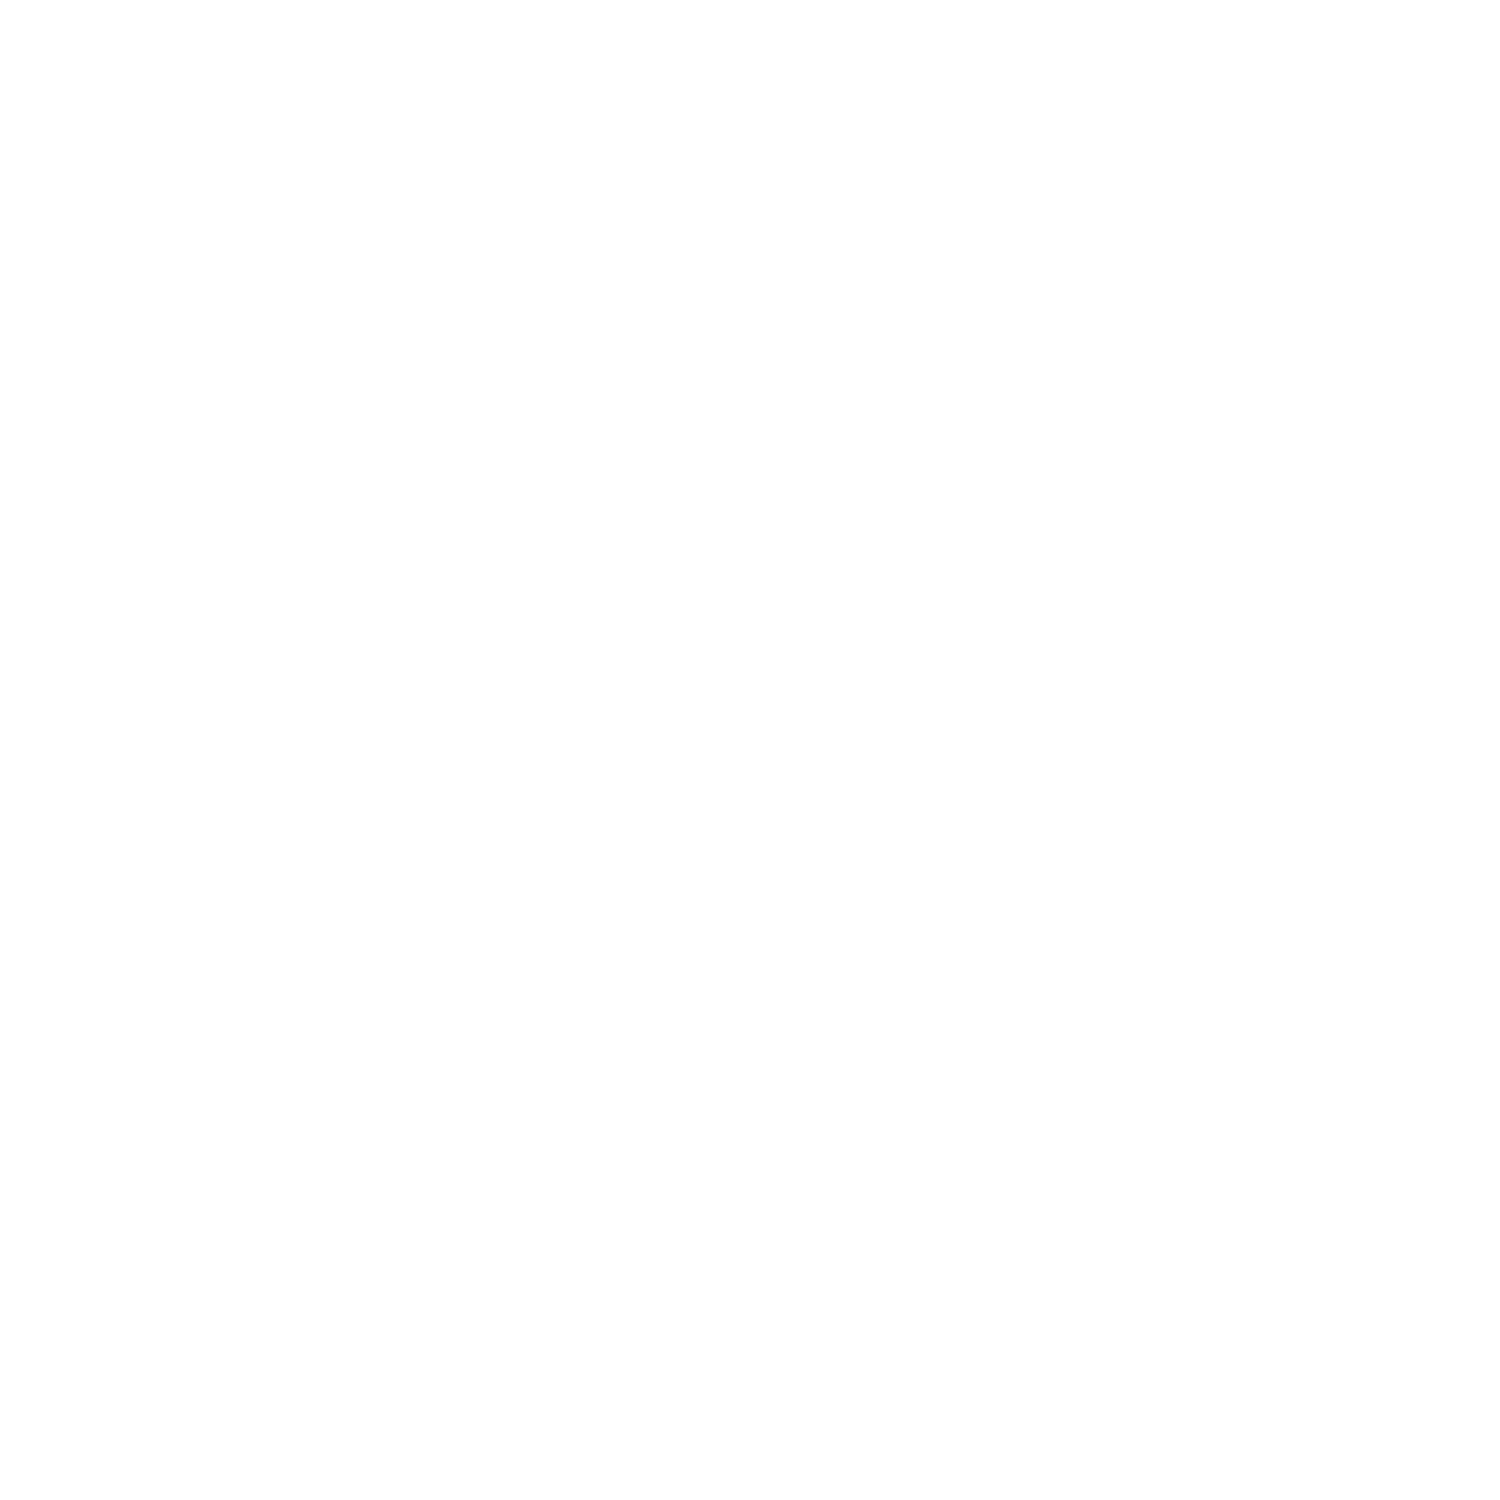 Central First Baptist Church